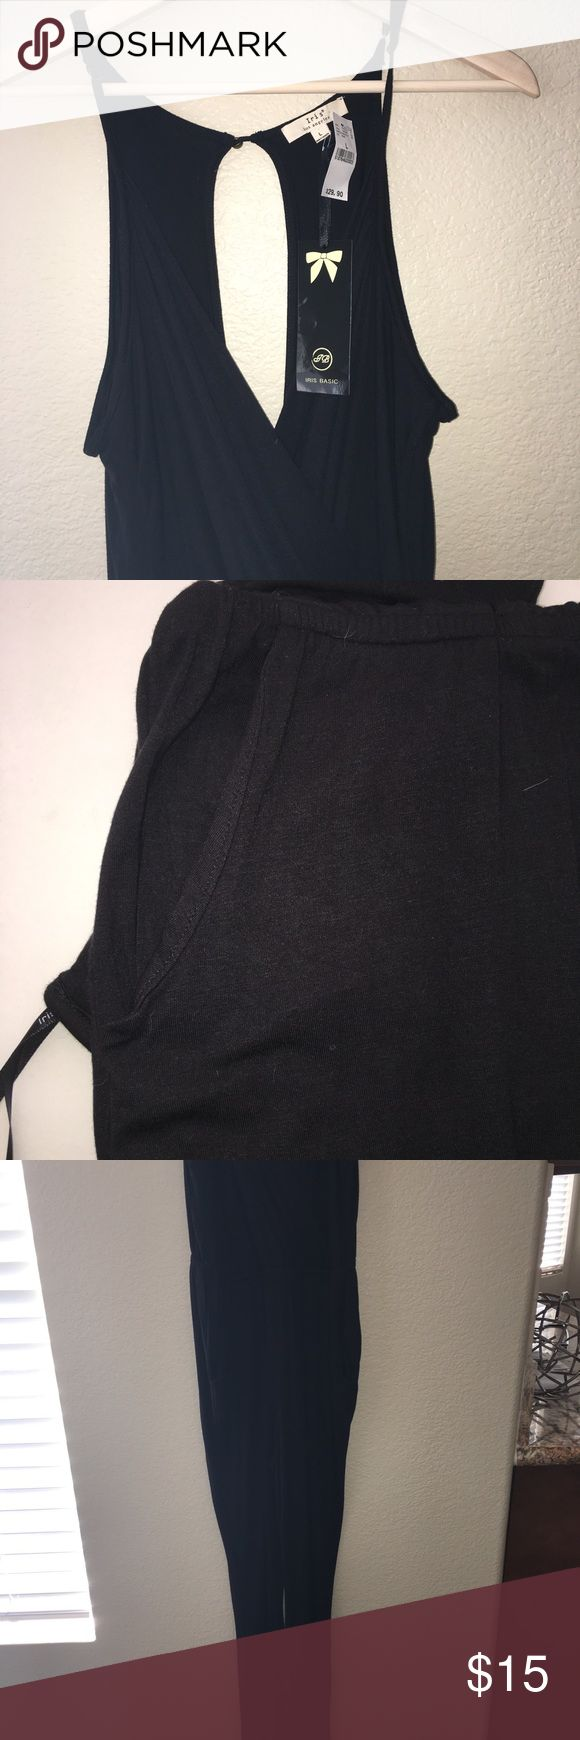 Black Pant Romper Brand new with tags! Wet Seal Other